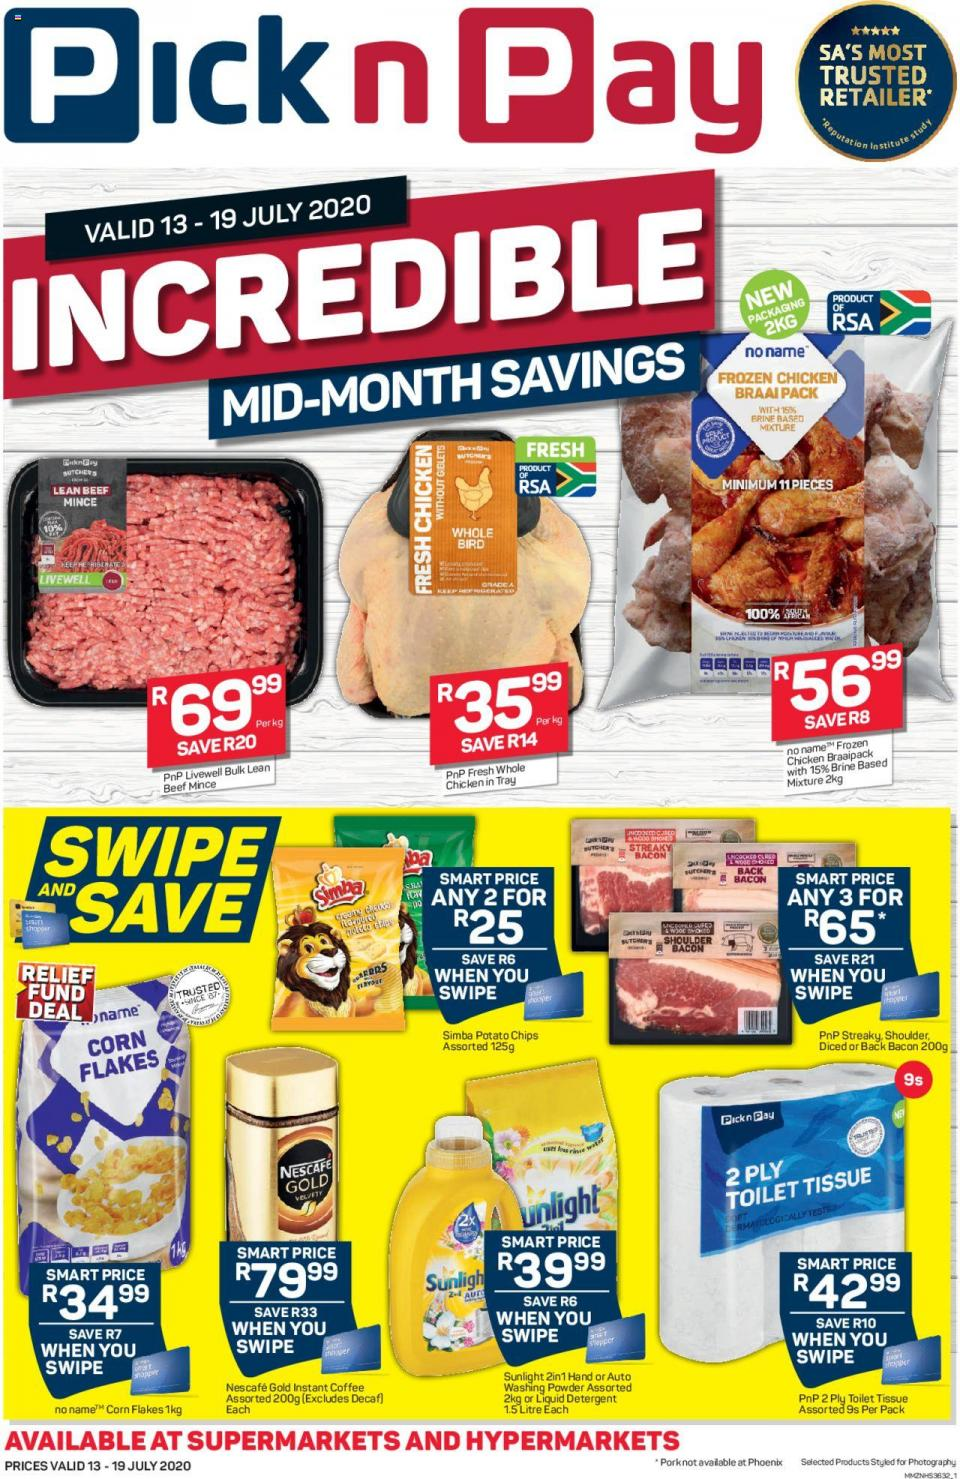 pick n pay incredible mid month savings 13 july 2020